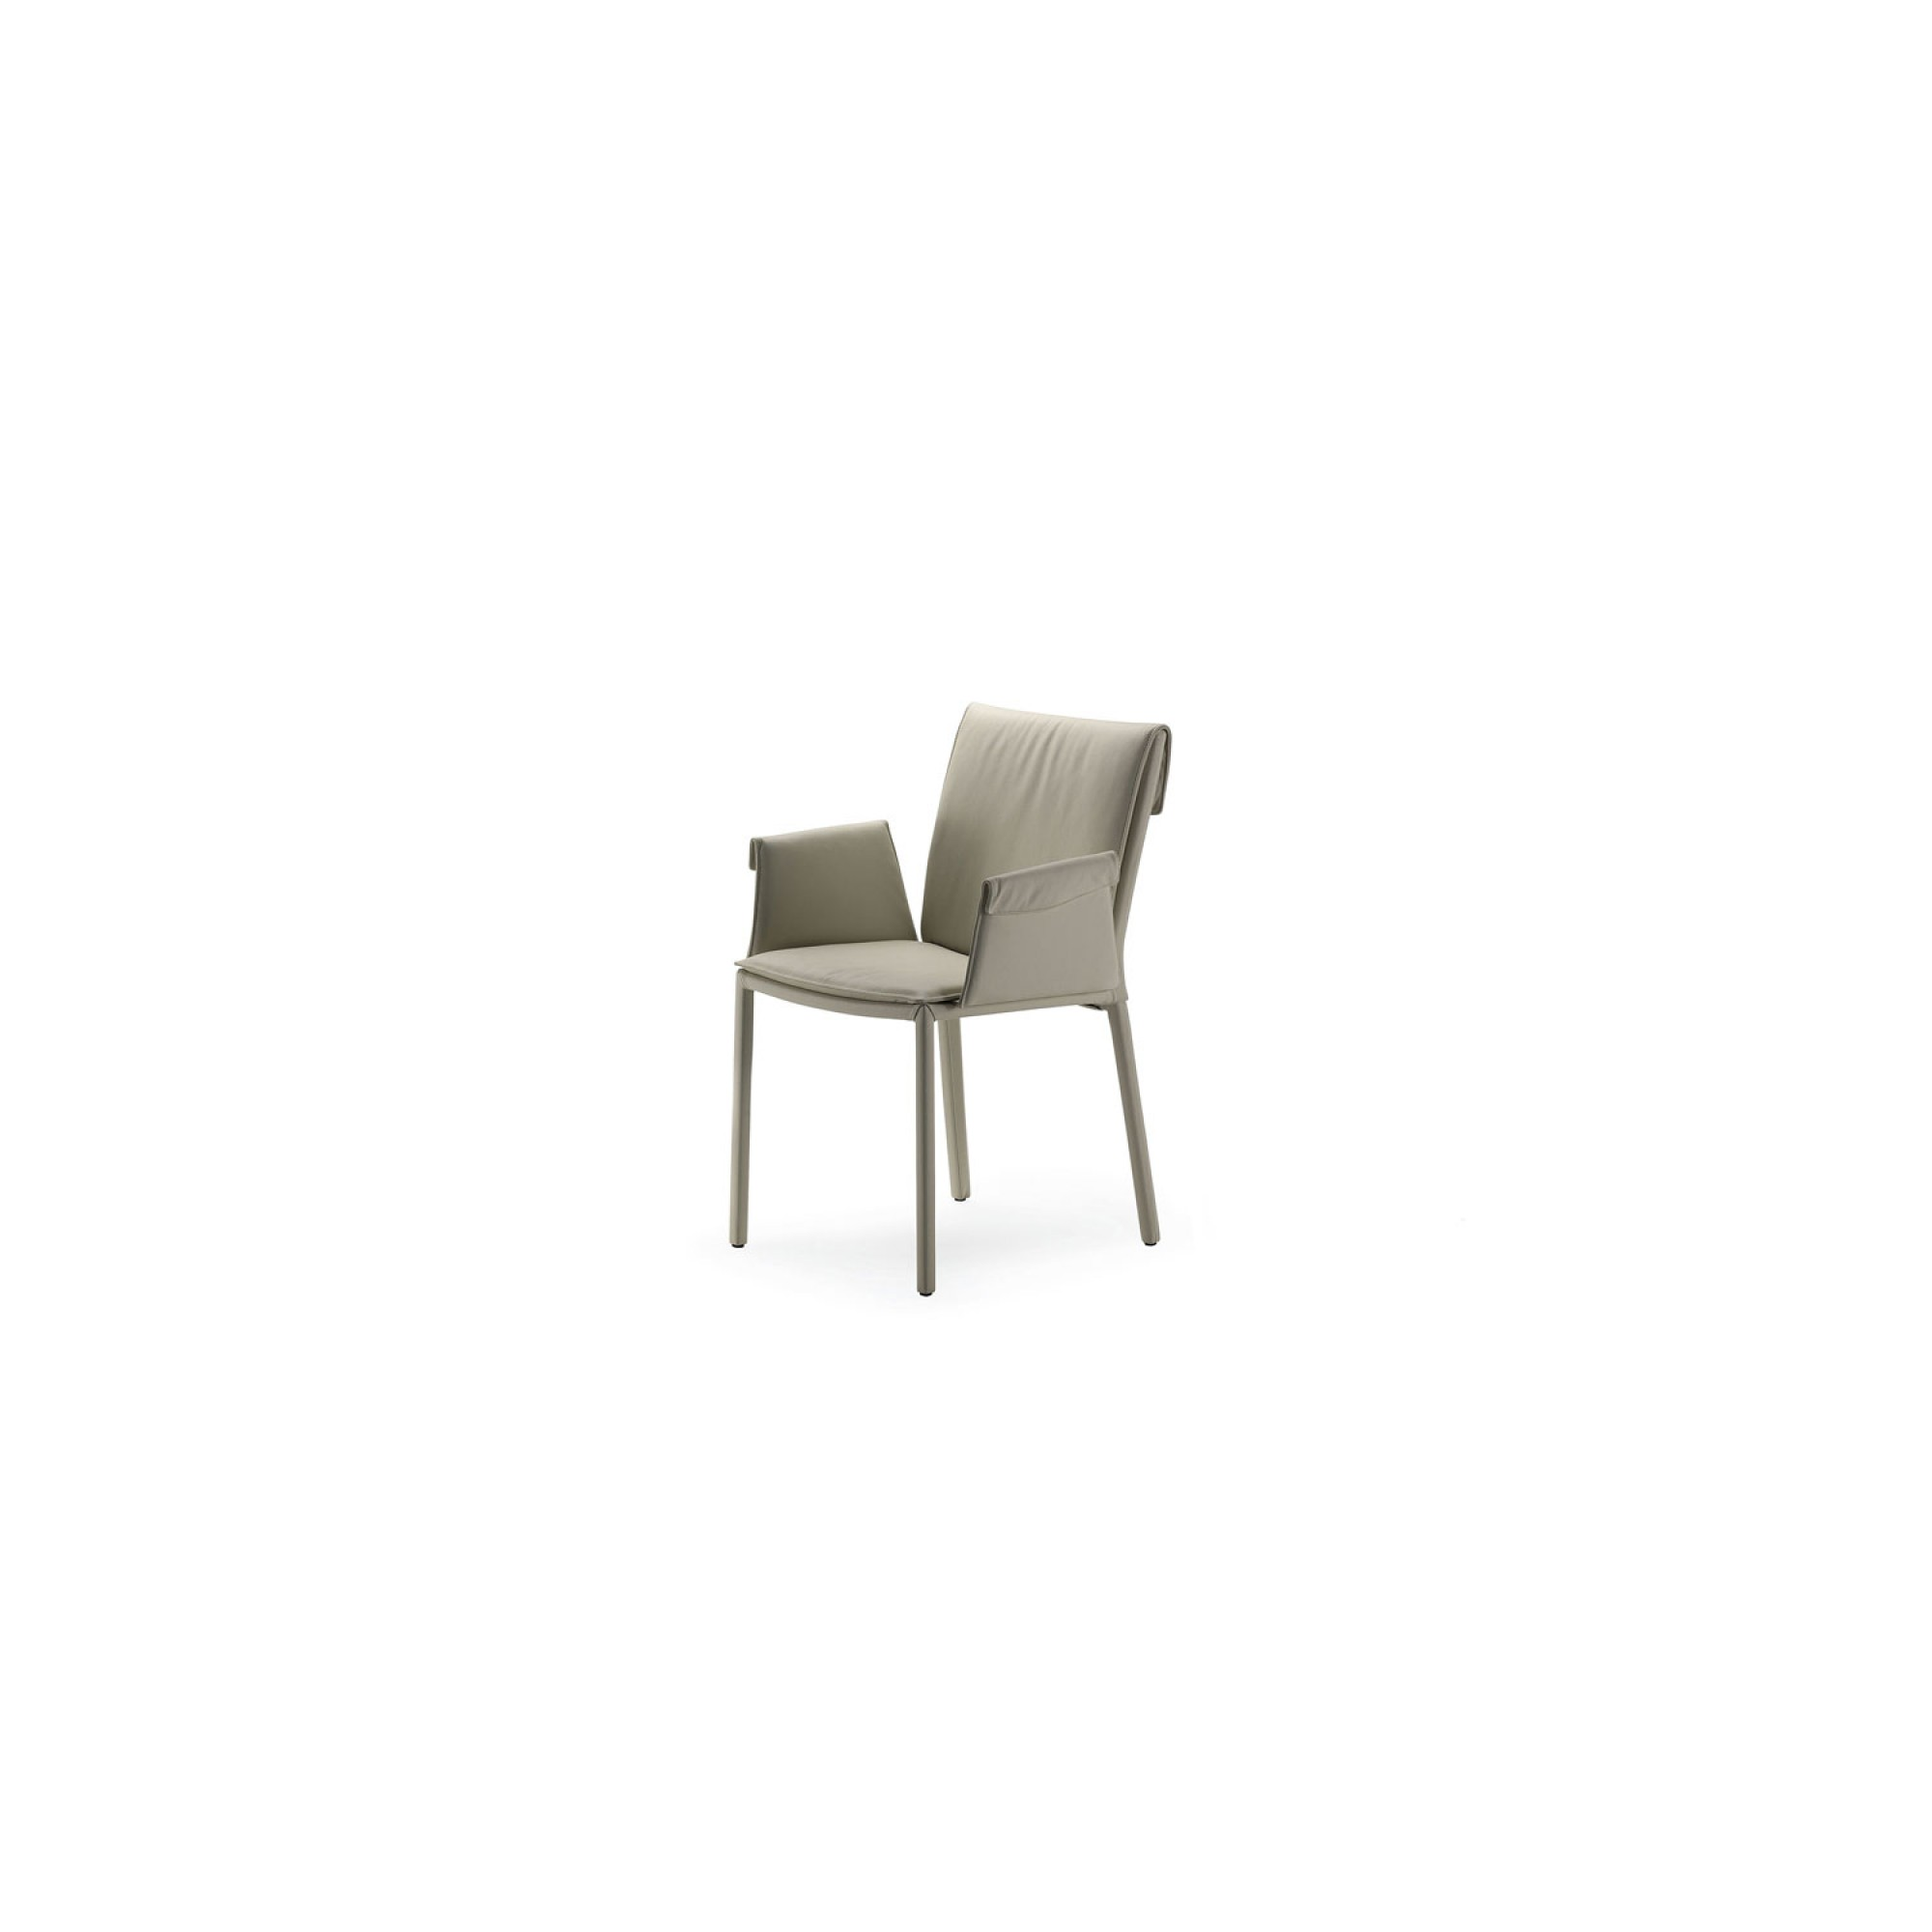 ISABEL ARMCHAIR, by CATTELAN ITALIA